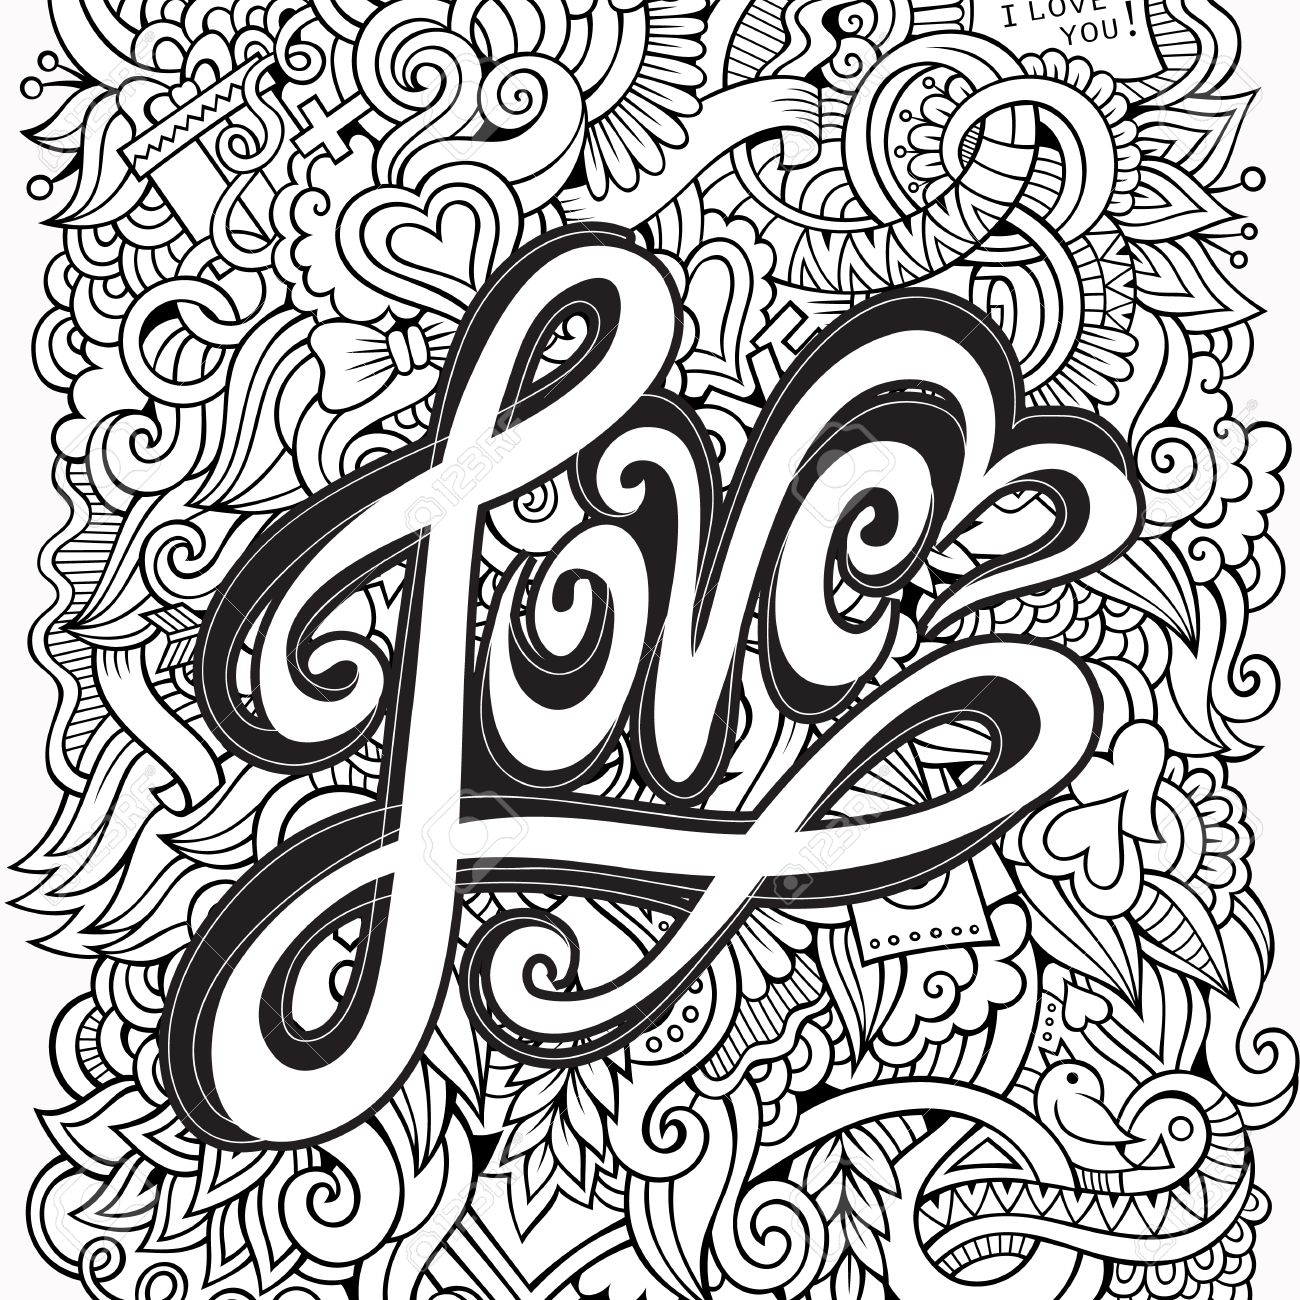 1300x1300 Love Word Sketch Stock Photos. Royalty Free Love Word Sketch